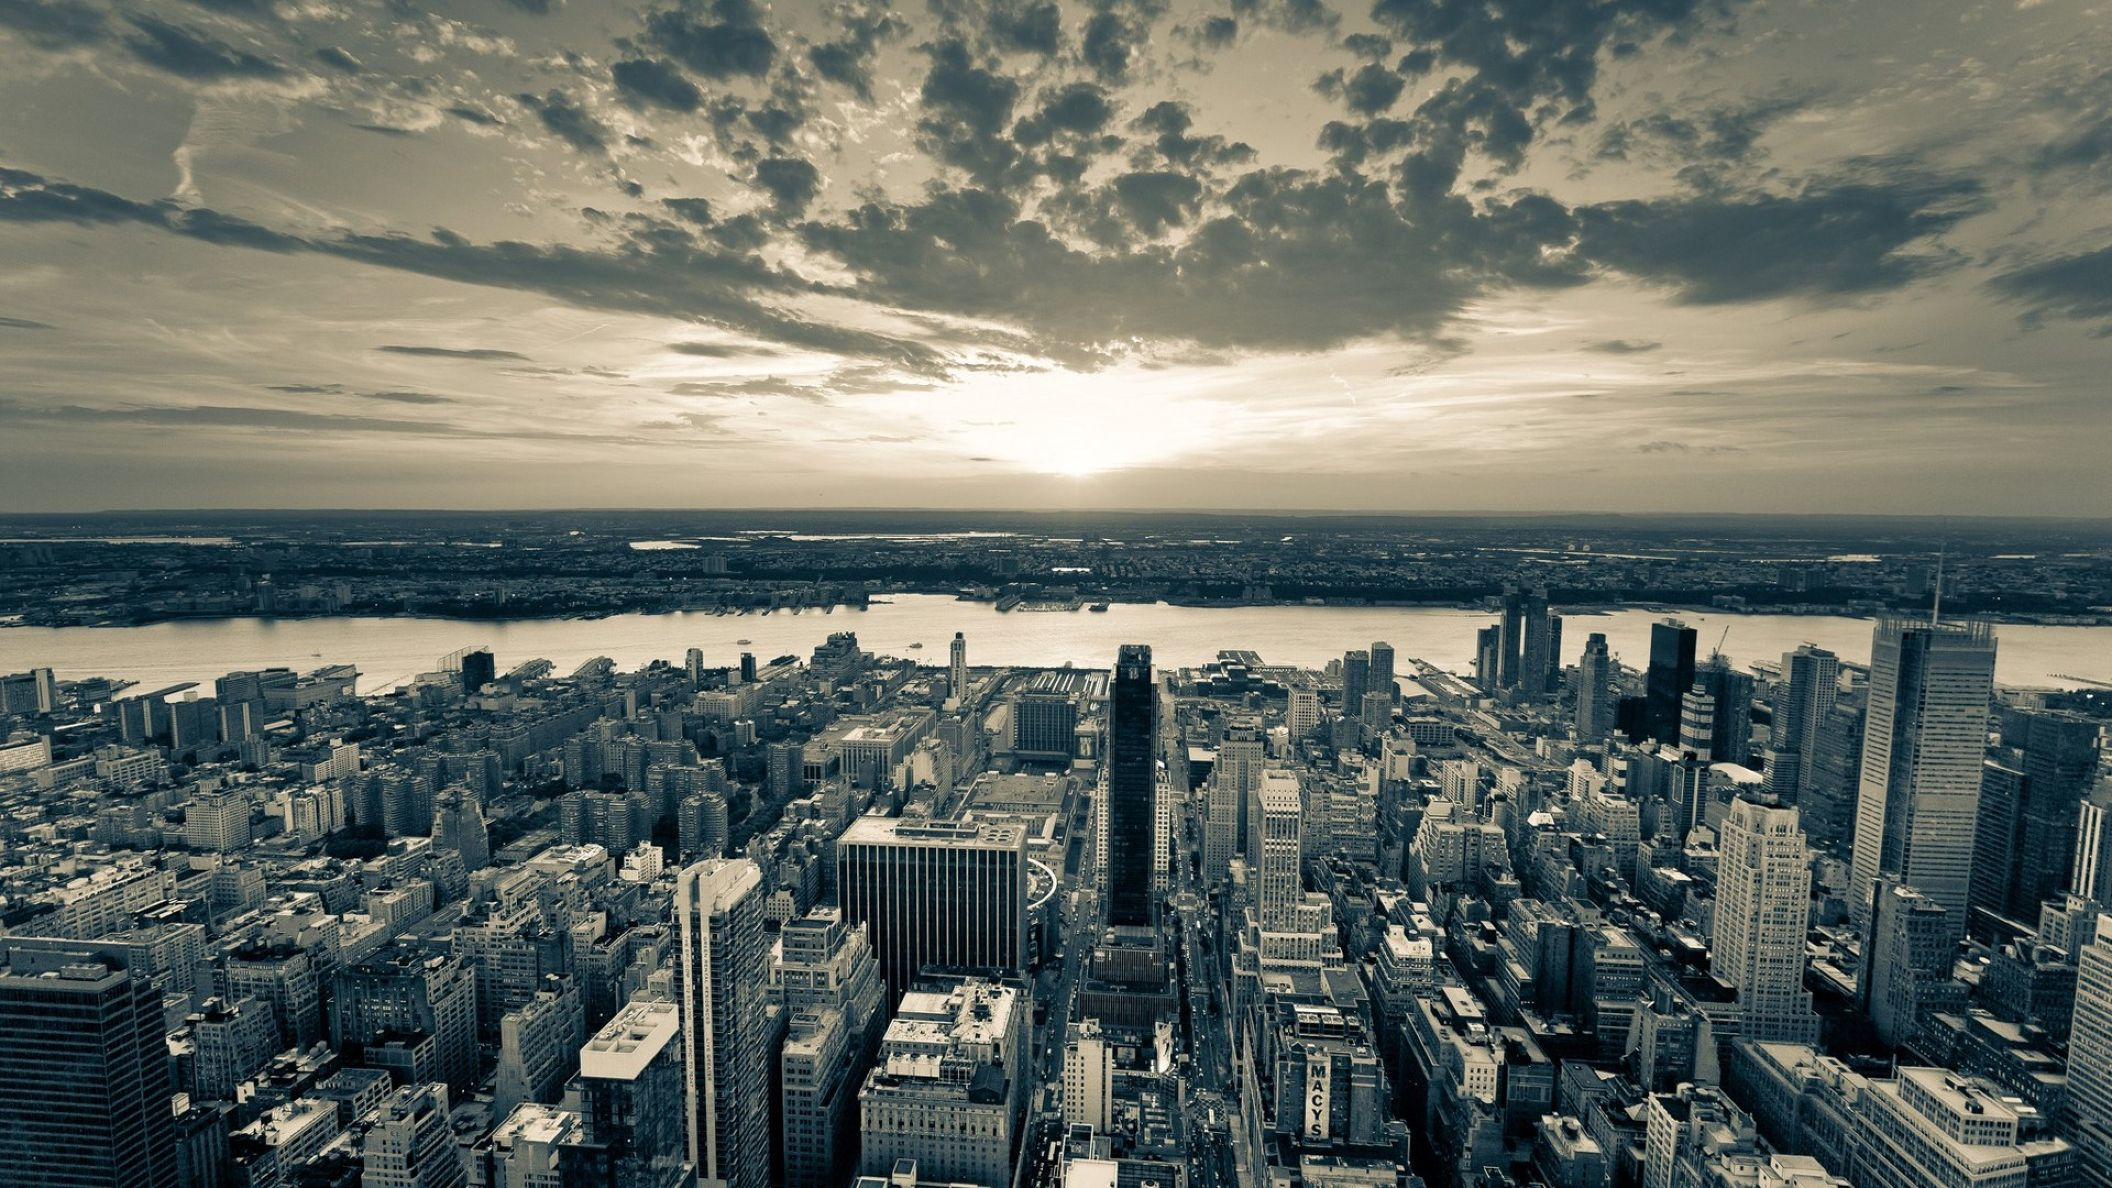 Download Free Hd New York City Hd Black And White Wallpaper New York City 2112x1188 Wallpaper Teahub Io